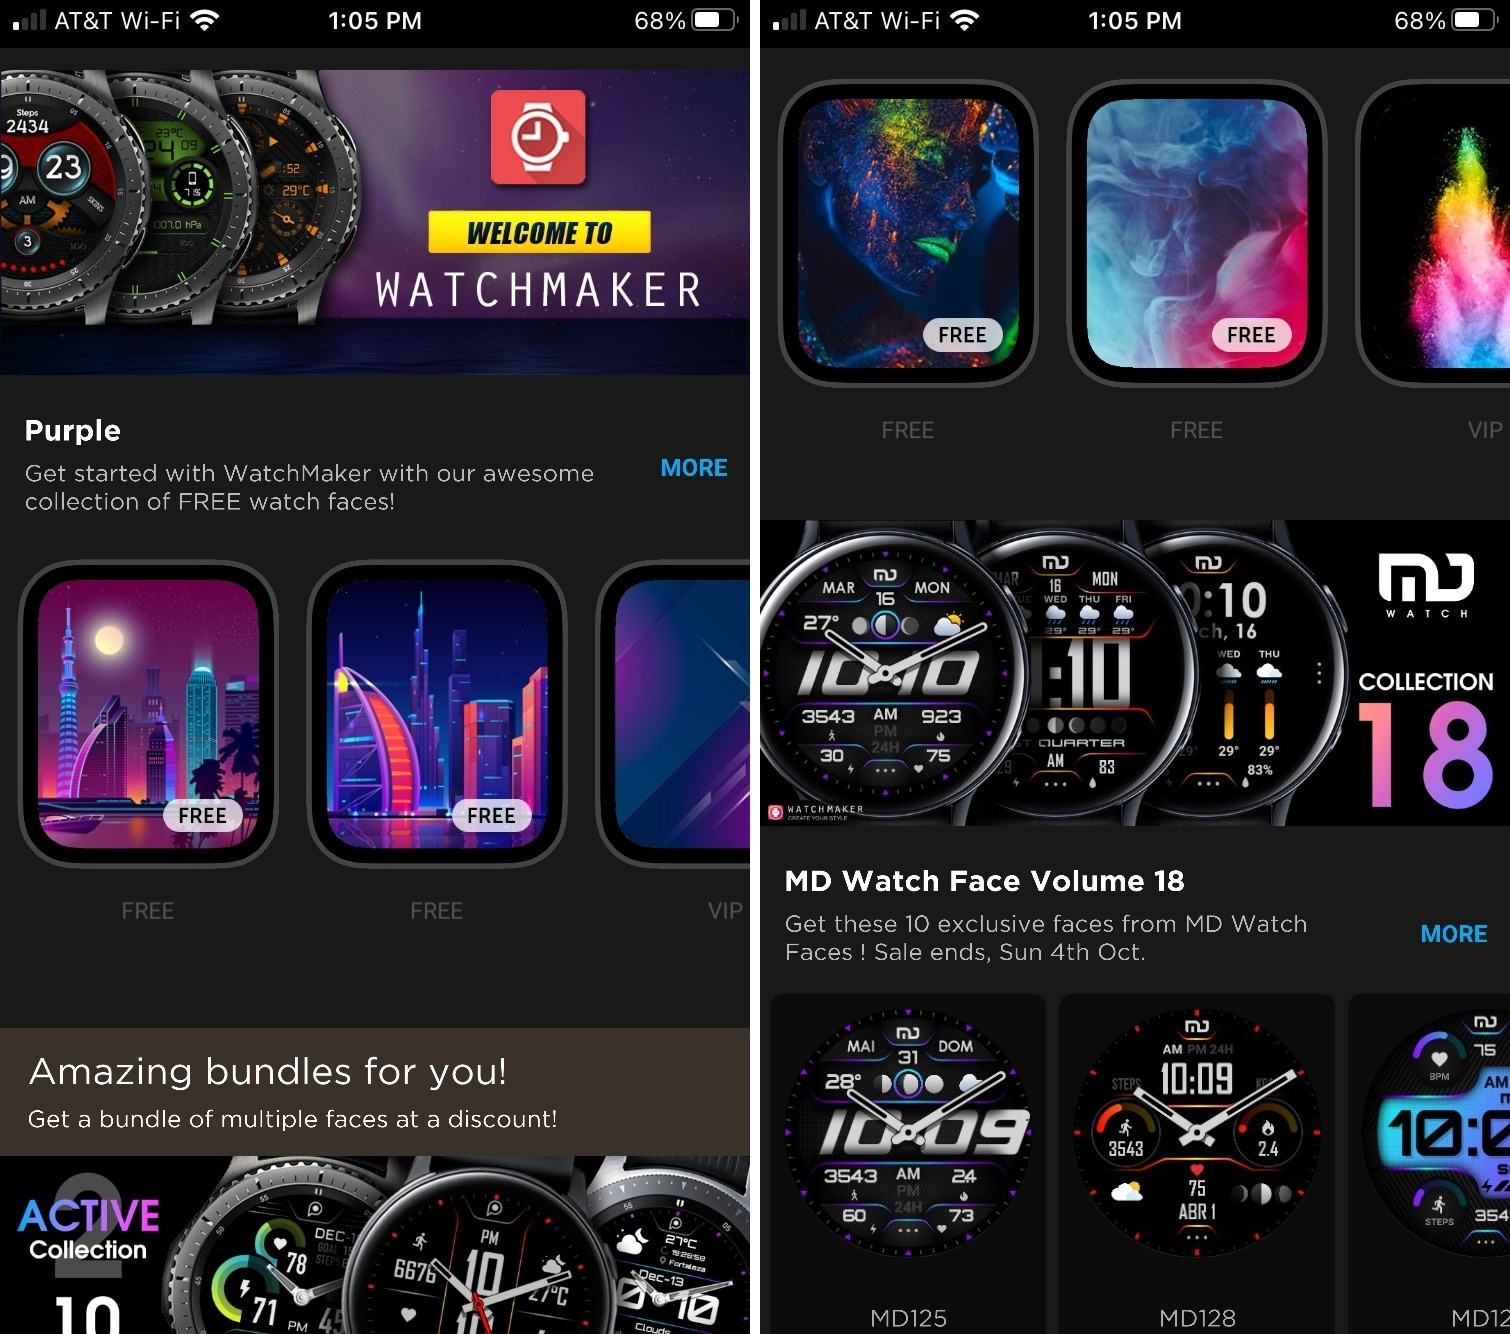 Watchmaker Browse All Watch Faces